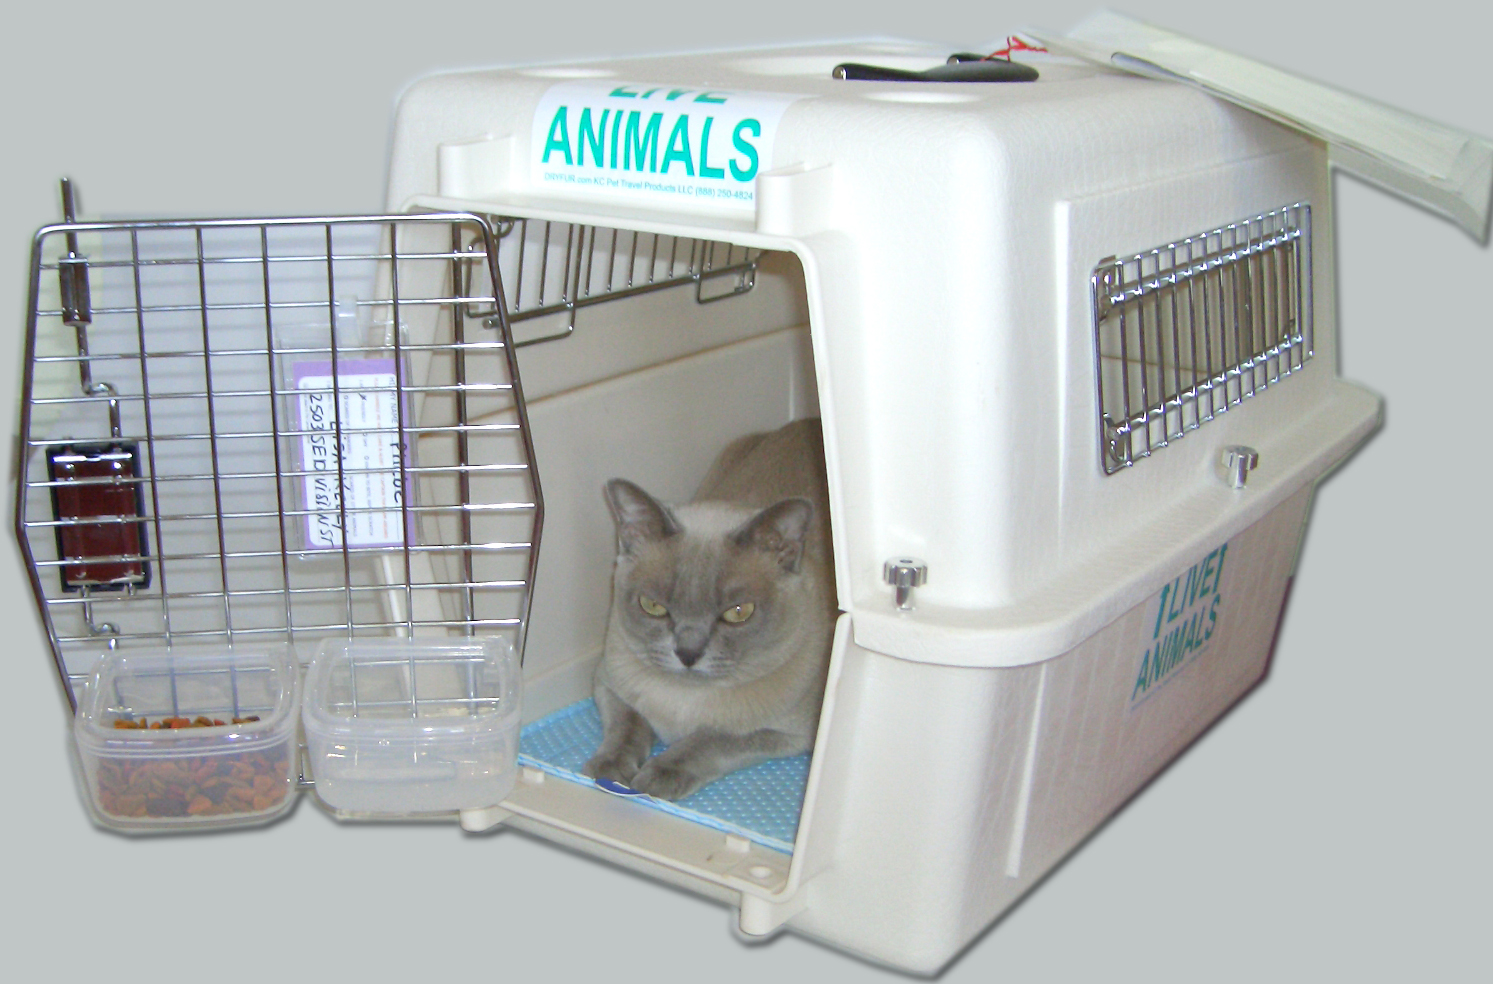 kennel-hook-on-dishes.jpg